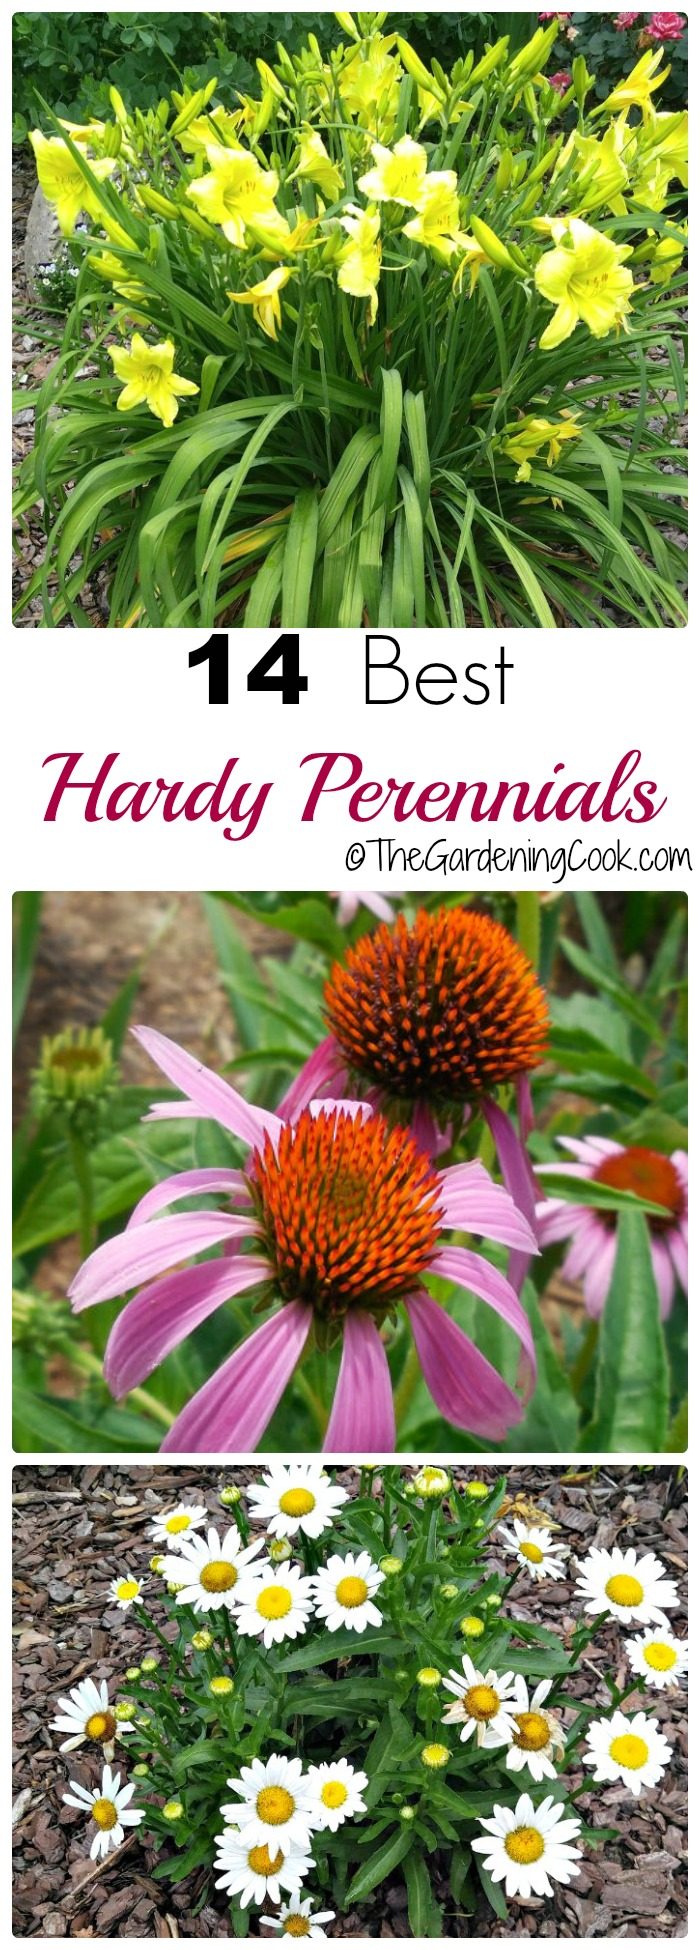 Hardy perennials my top 14 favorites the gardening cook hardy perennials are those that will take a freeze and come back for at least three mightylinksfo Gallery